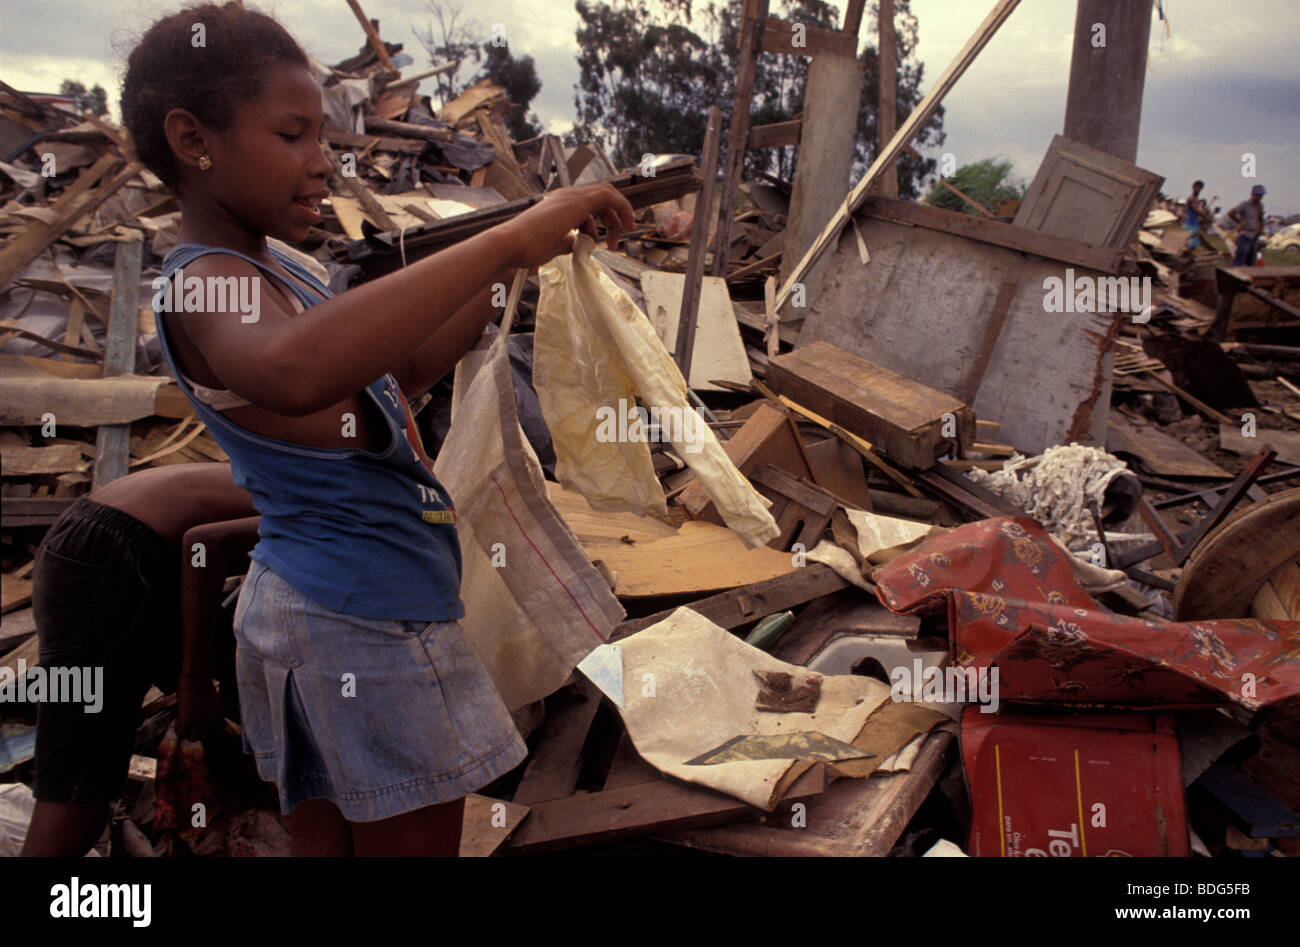 Homeless families being evicted from invaded area. Tractor destroyed their houses. Children look for missing things. - Stock Image